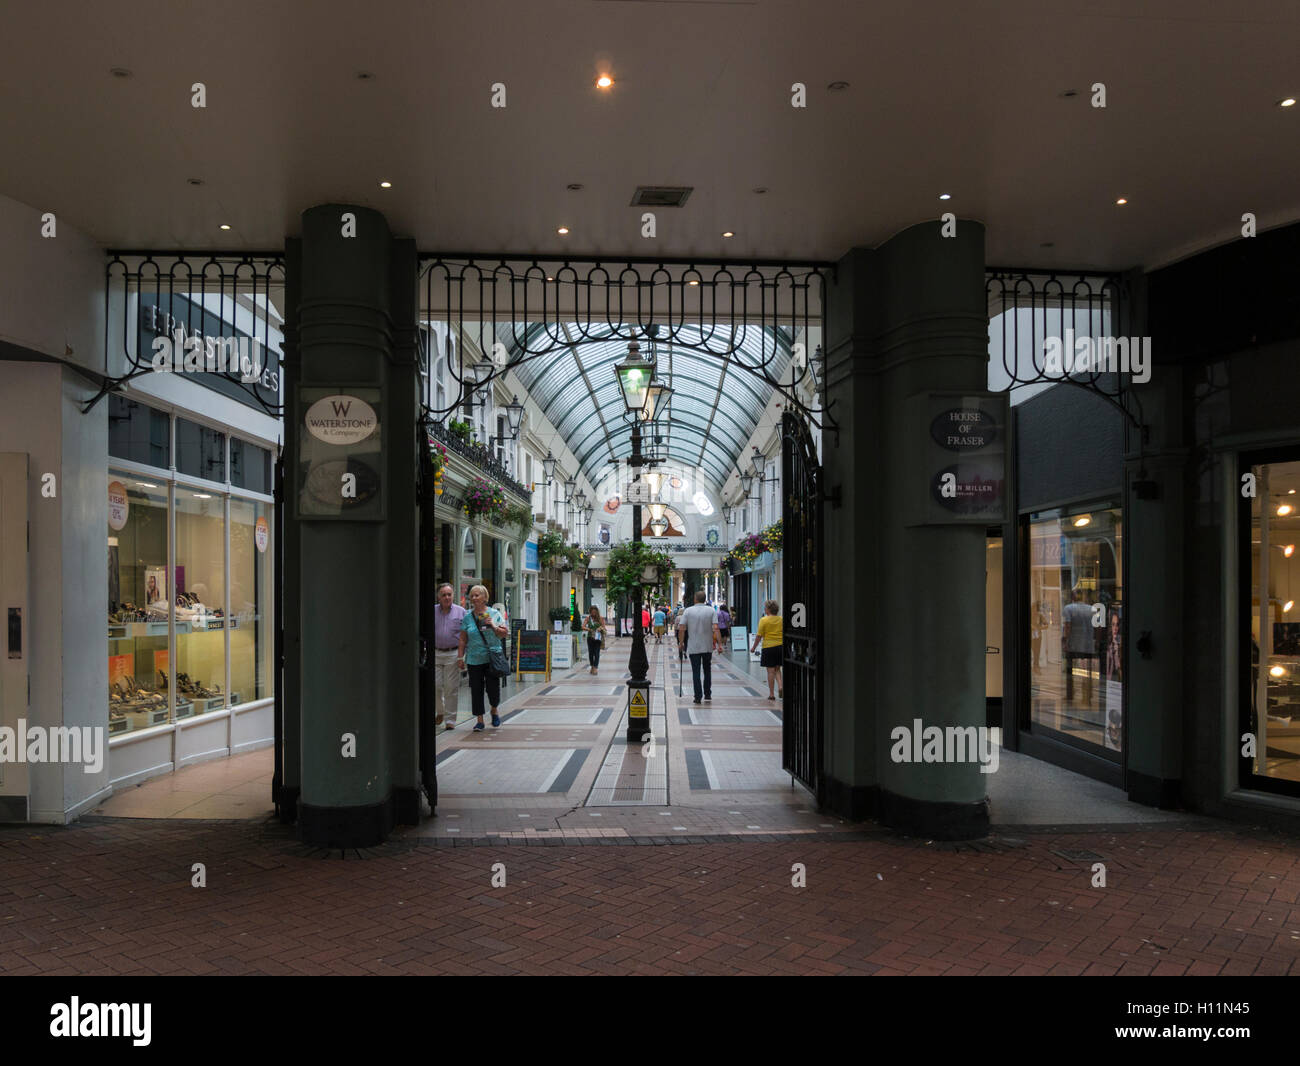 Bournemouth Arcade St Peter's Road Dorset England UK provides undercover shopping with glass covered walkway - Stock Image